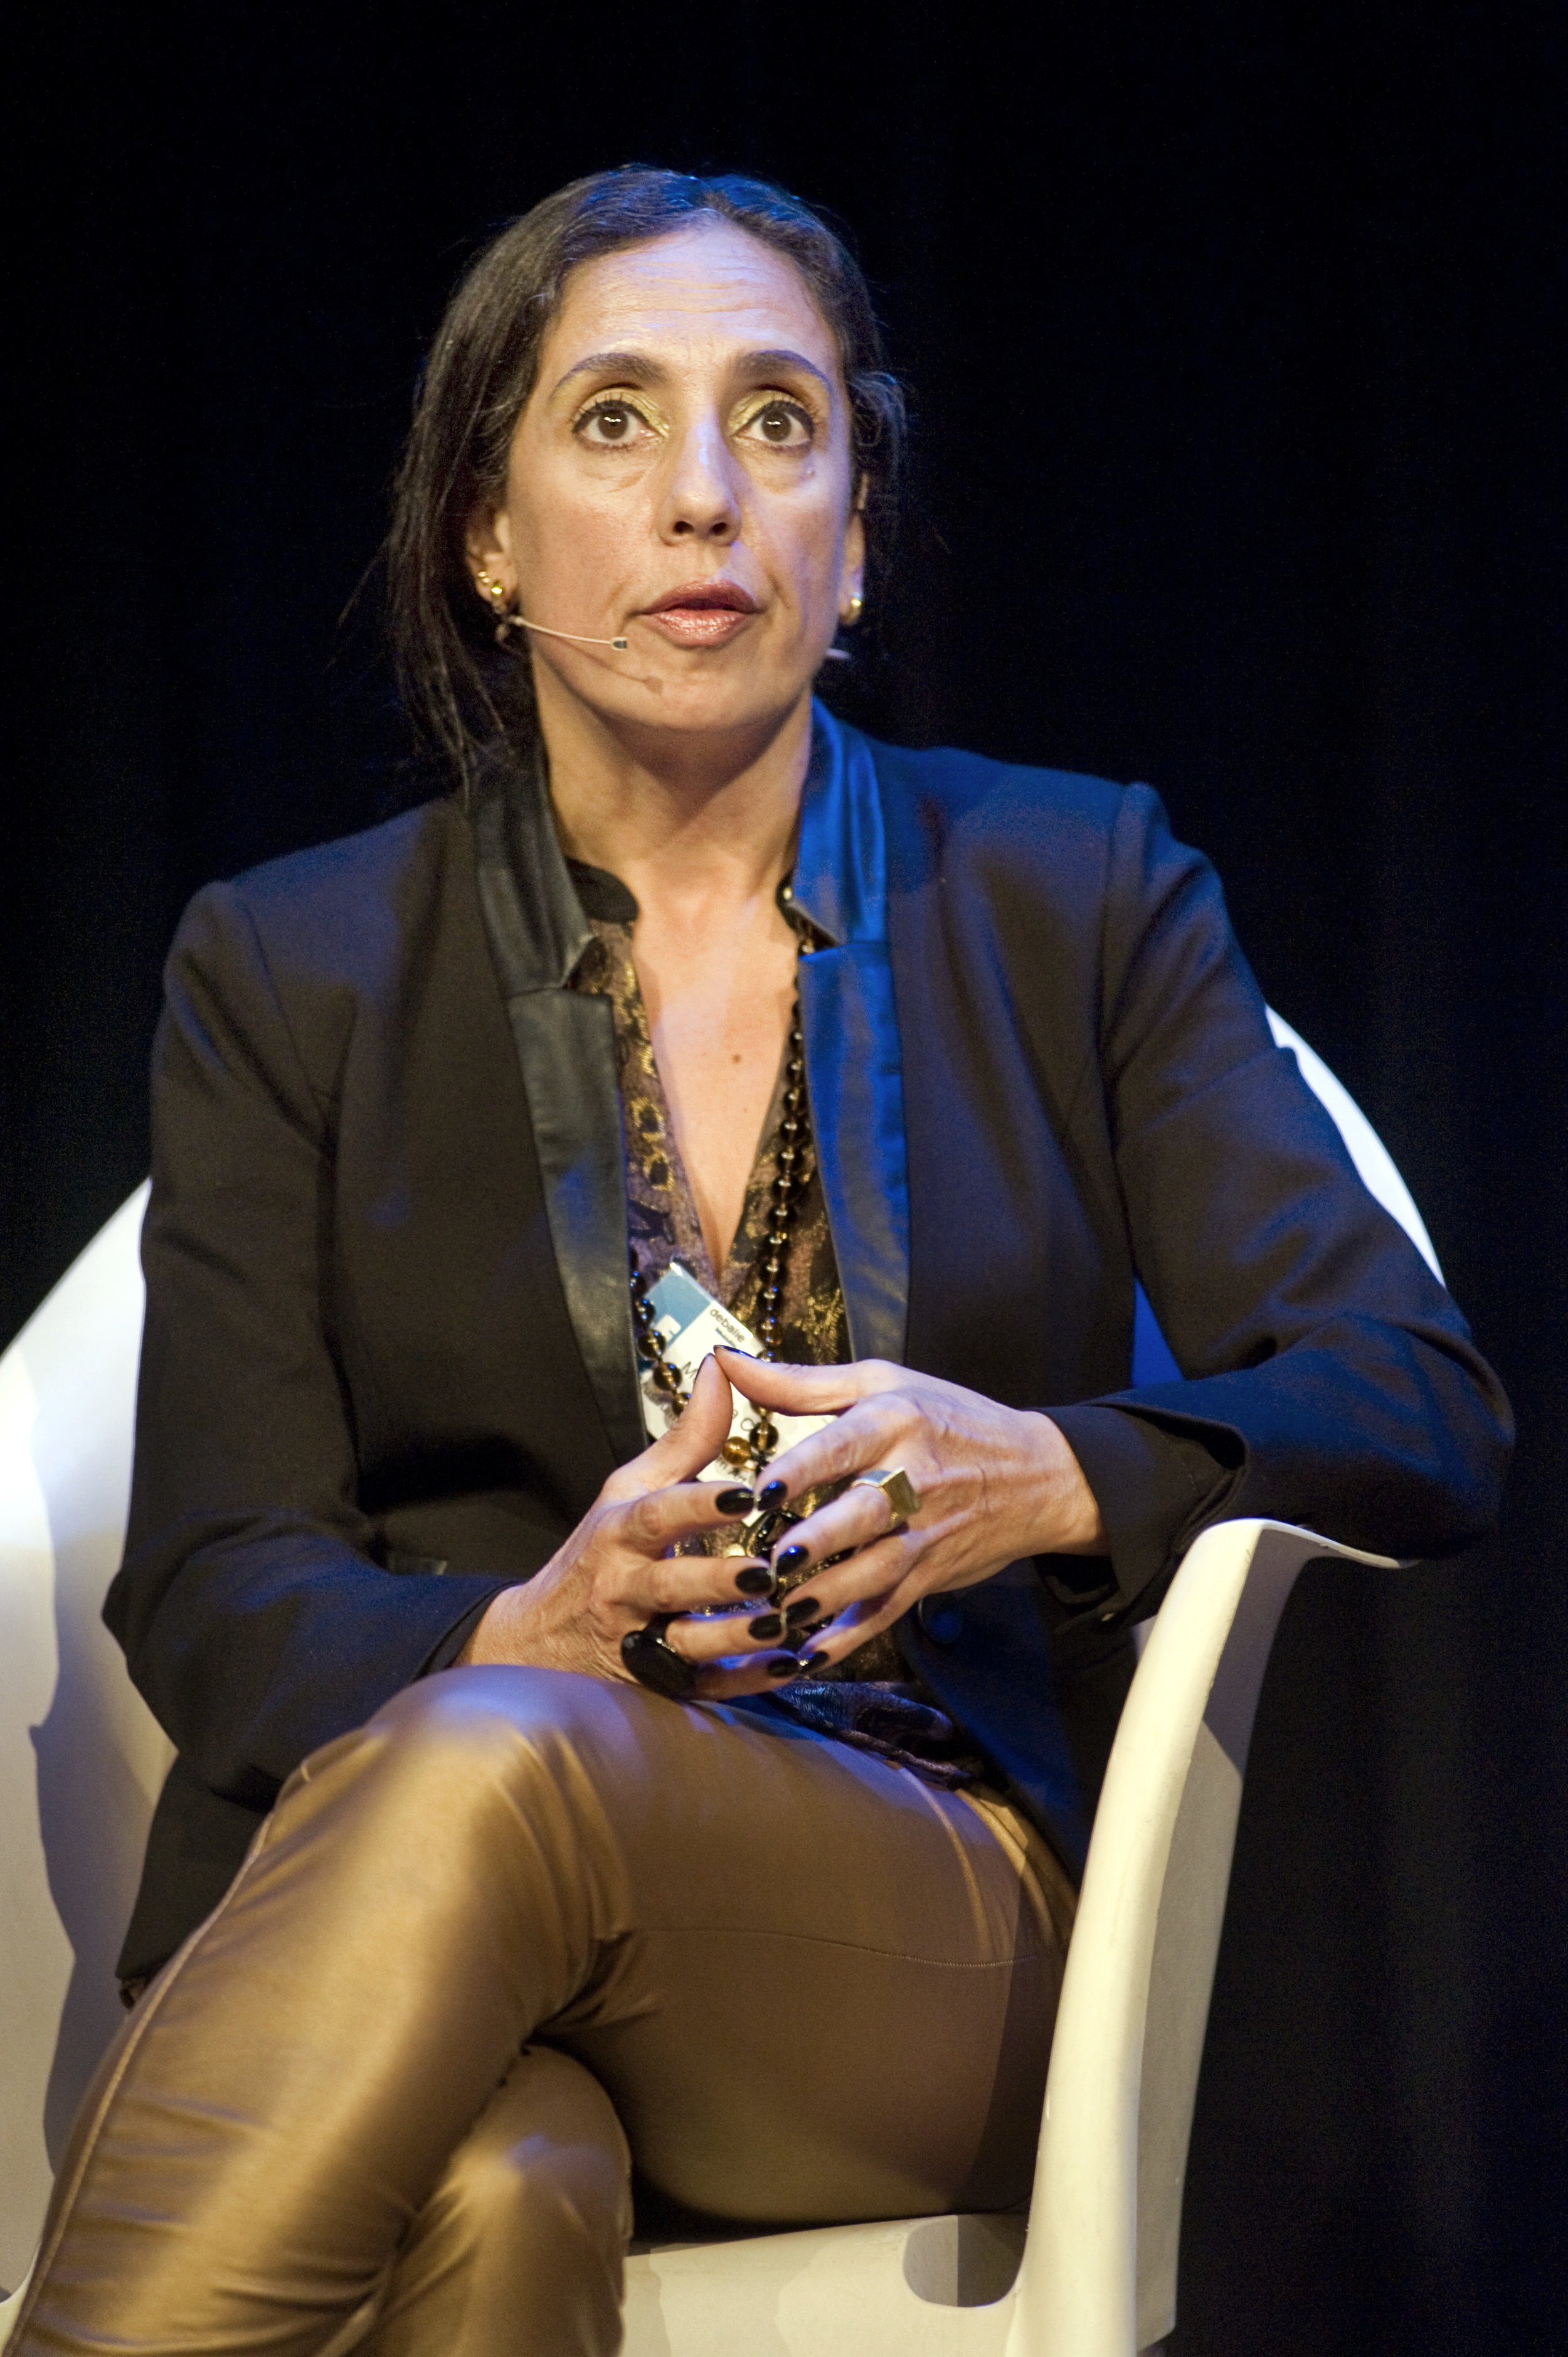 Magnólia Costa - is a philosopher, translator and art critic specialised in  17th Century Franco-Italian Art. She received her PhD in Philosophy from University of São Paulo. She is a lecturer on Contemporary Art History and Brazilian Culture at MAM, Museum of Modern Art of São Paulo, where she also acts as Head of Institutional Affairs.